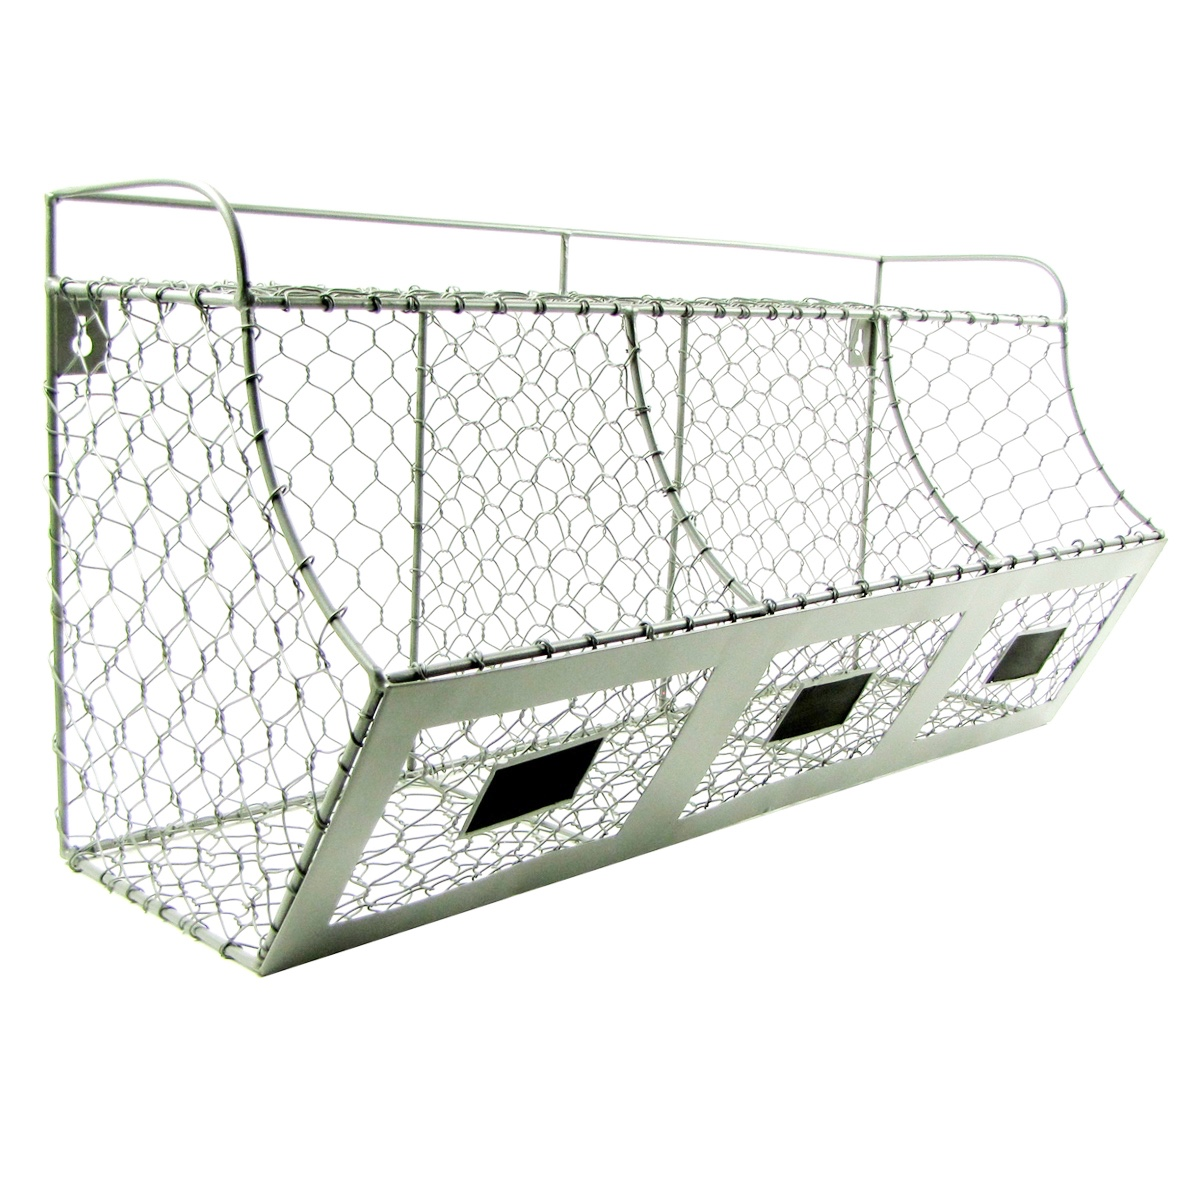 Rustic Chicken Wire Wall Storage 3 Bin Basket Primitive Country Farmhouse  Decor   Walmart.com